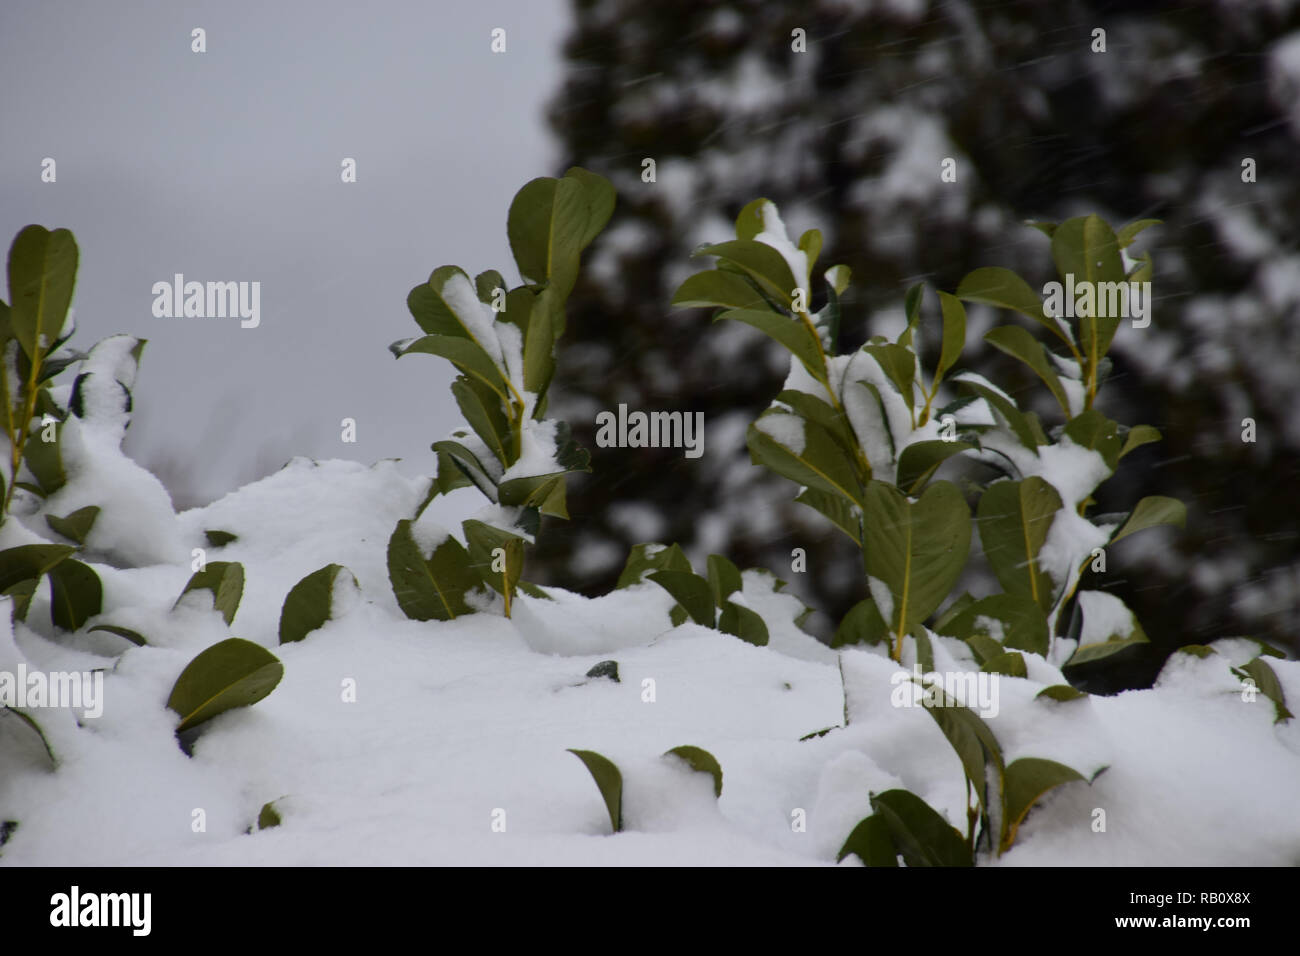 prunus laurocerasus or english laurel or cherry laurel in heave snow, common laurel covered with snow in front of gray sky - Stock Image